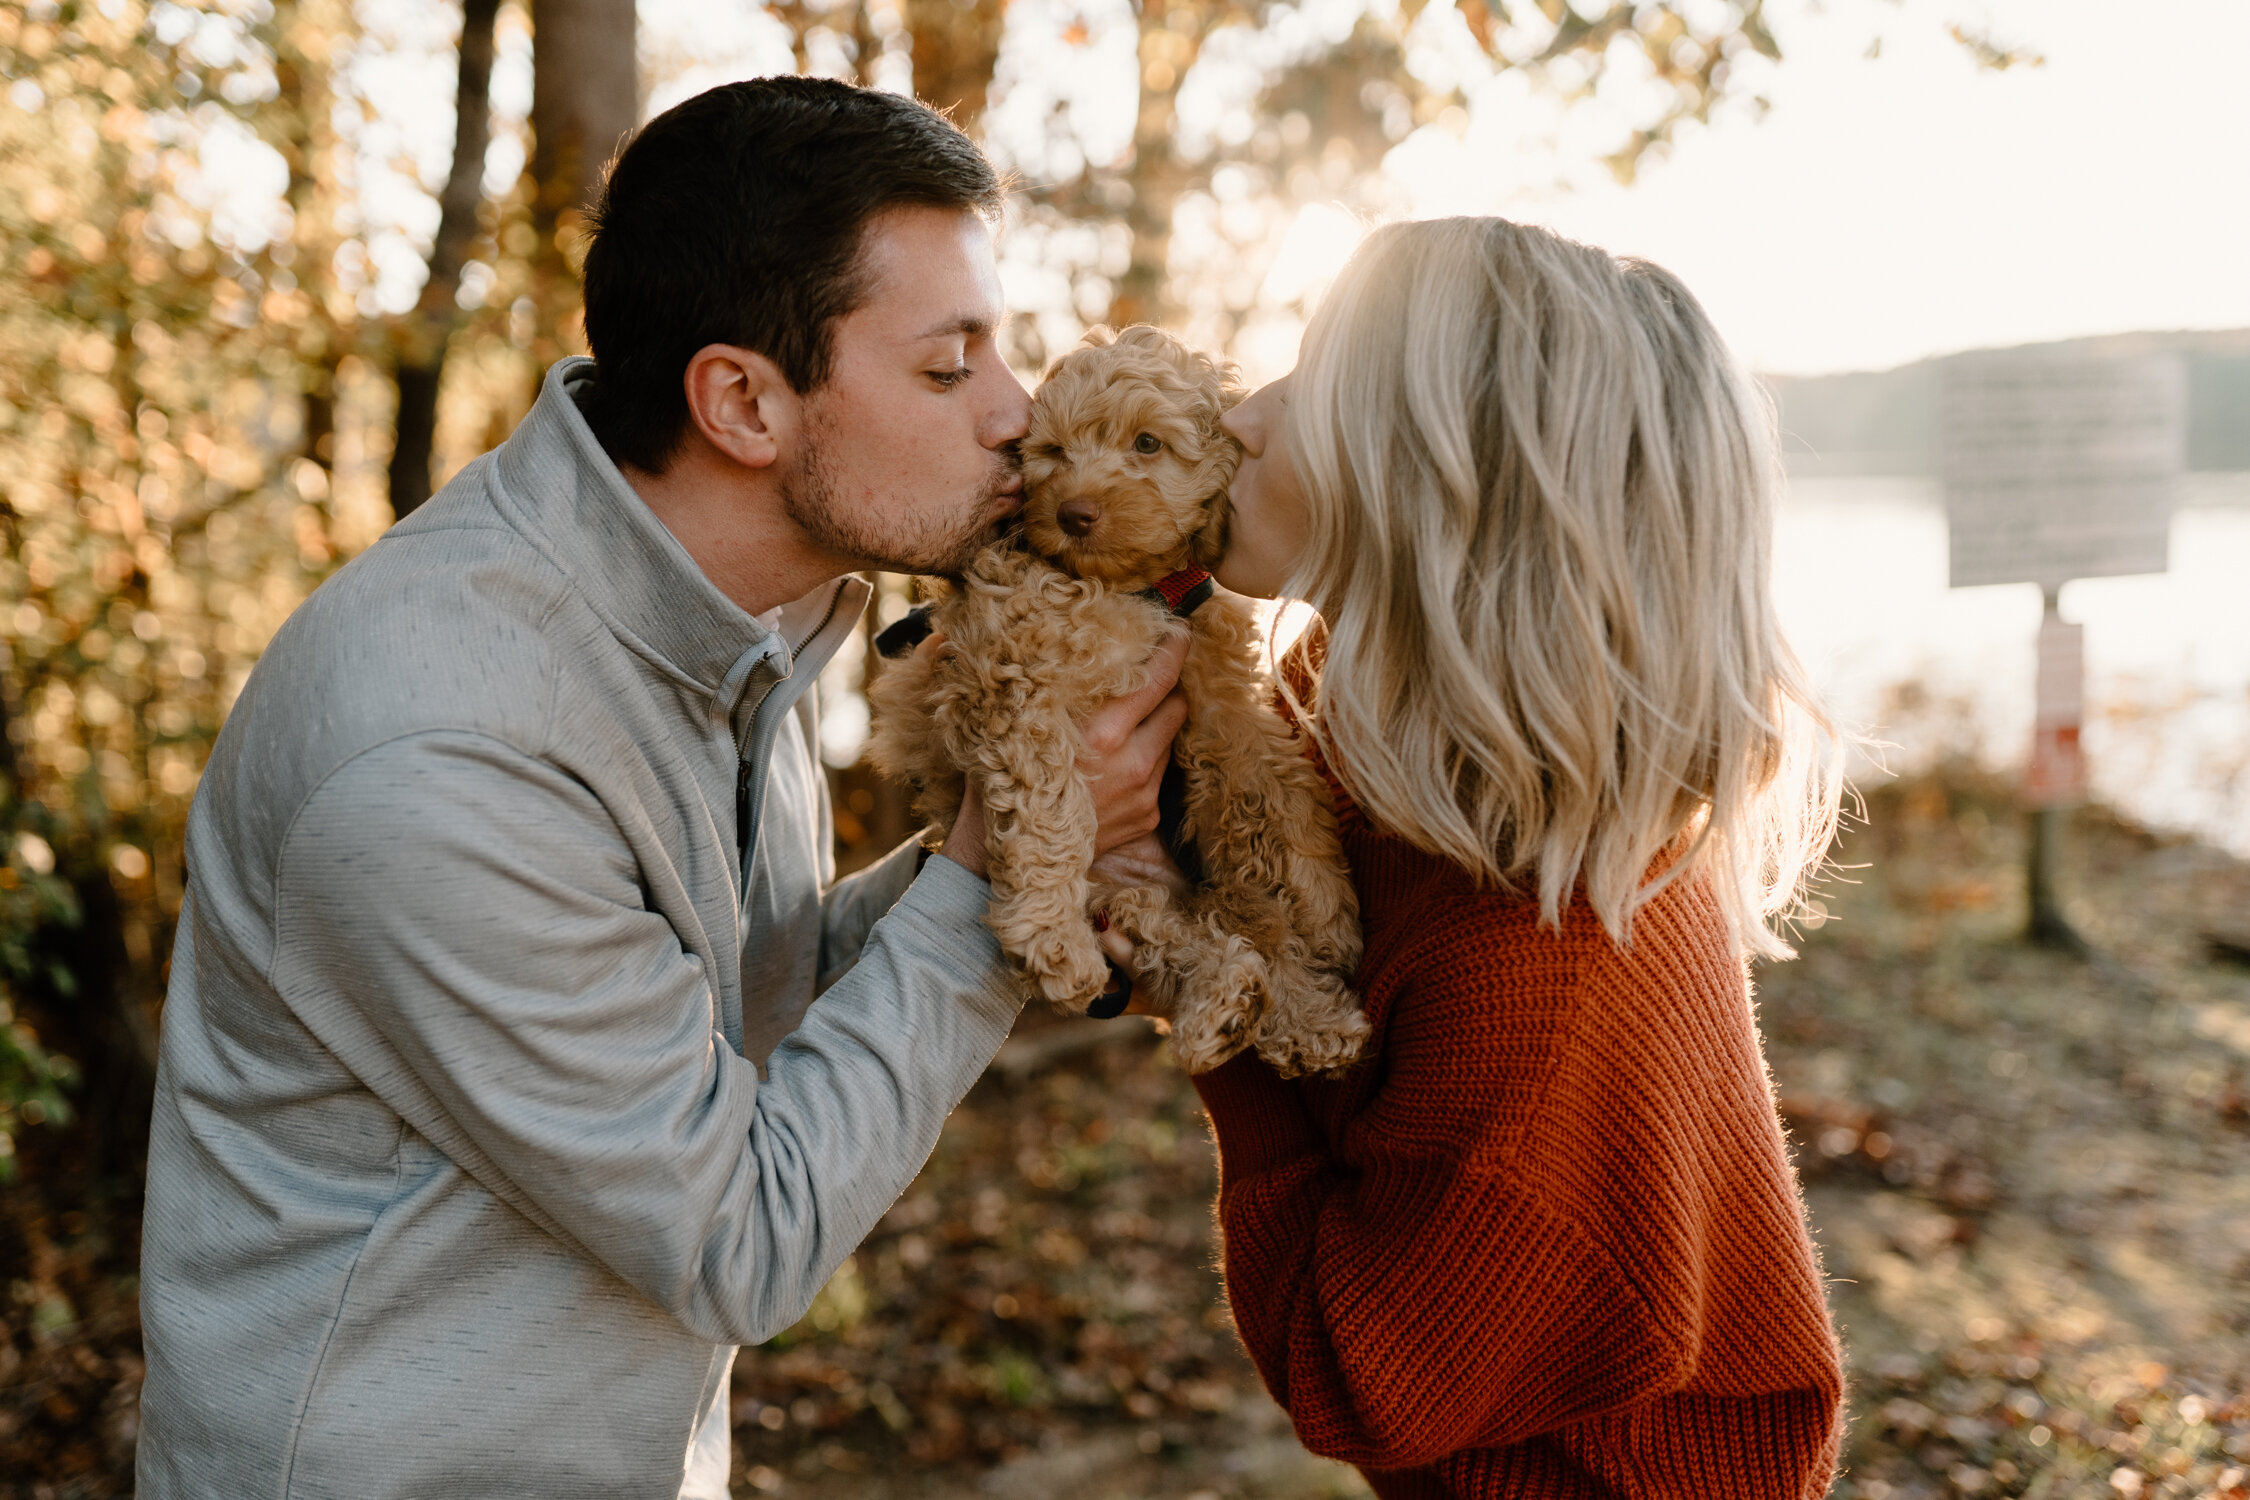 Puppy kisses during fall engagement session in Greensboro, NC